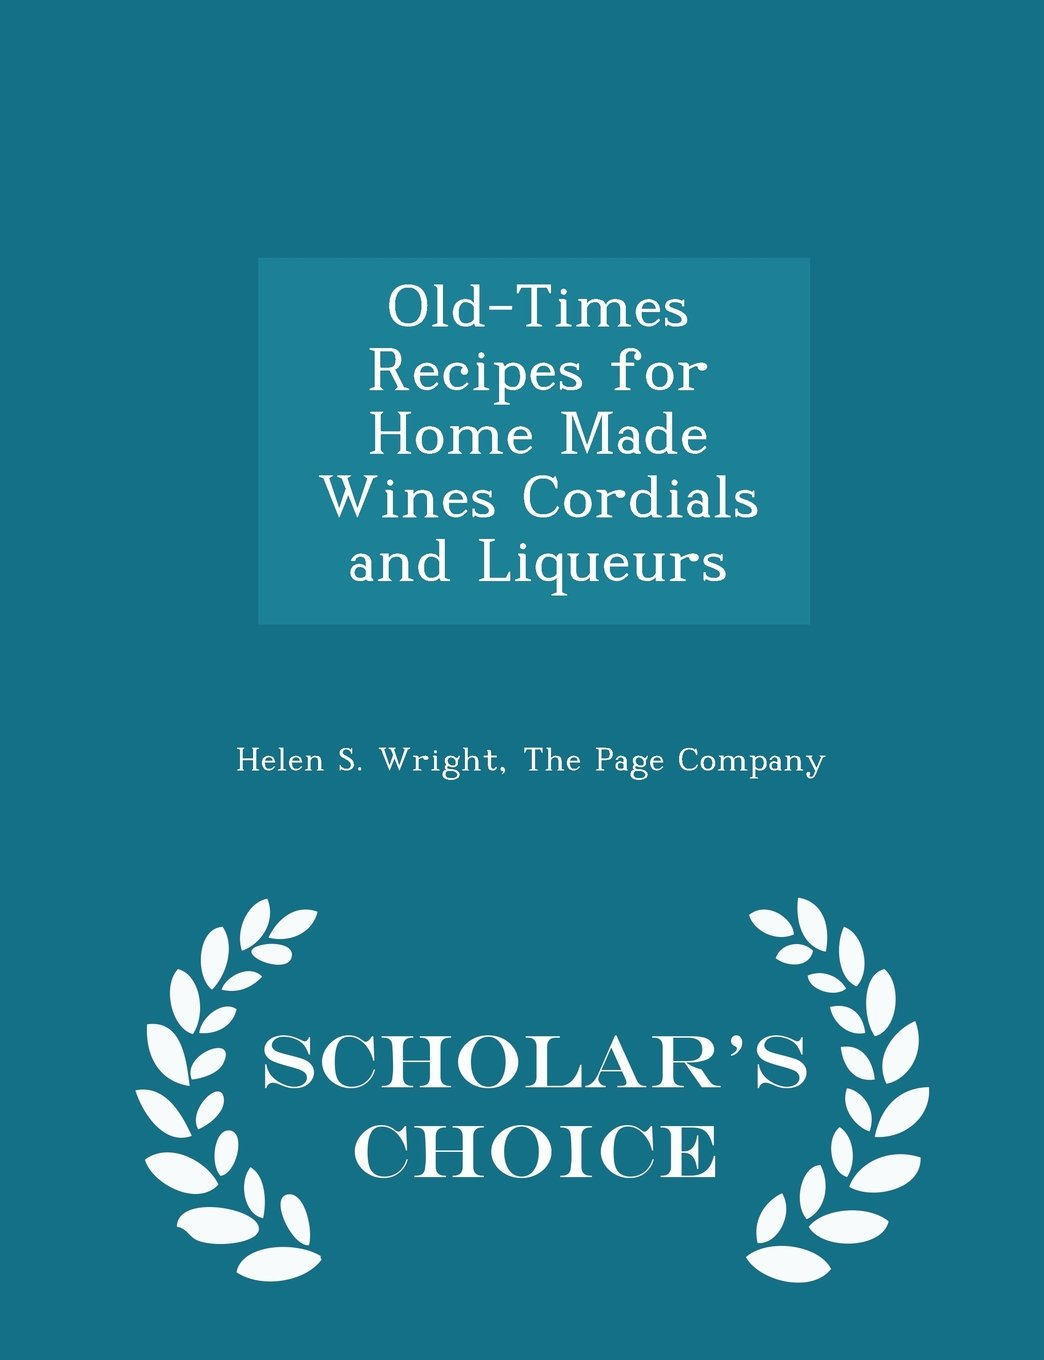 Download Old-Times Recipes for Home Made Wines Cordials and Liqueurs - Scholar's Choice Edition pdf